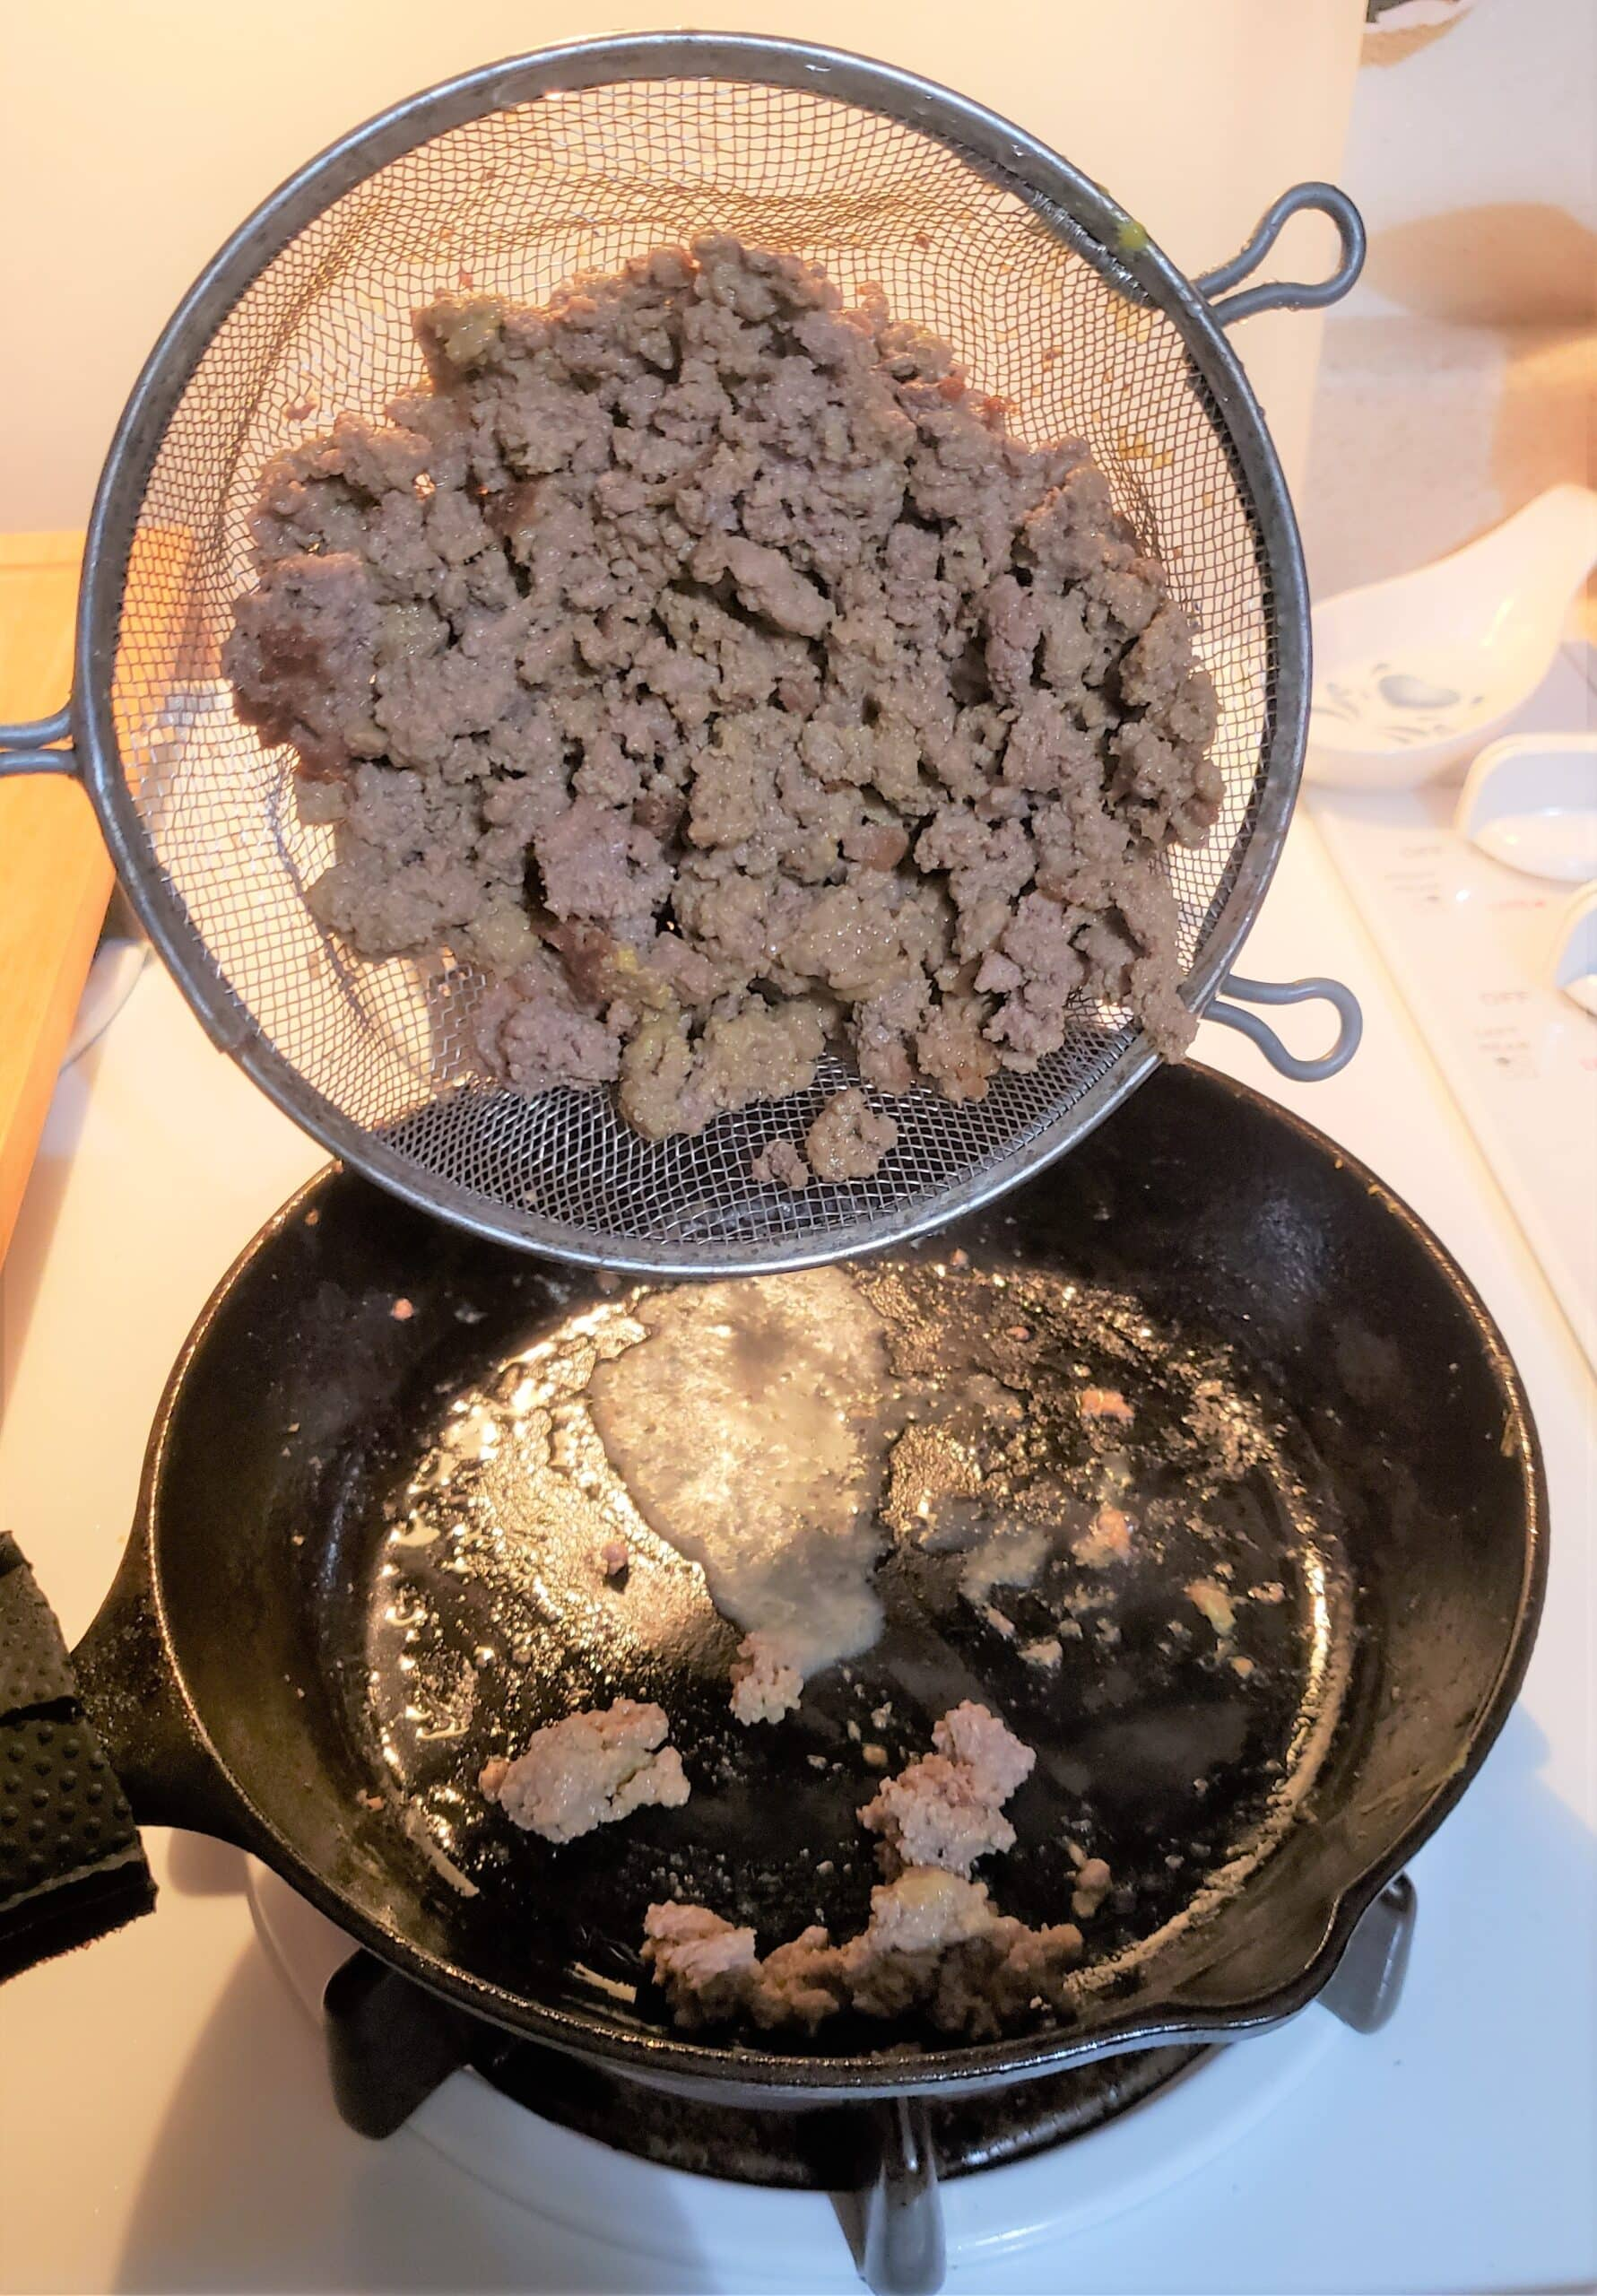 Ground beef in strainer being poured into a hot skillet